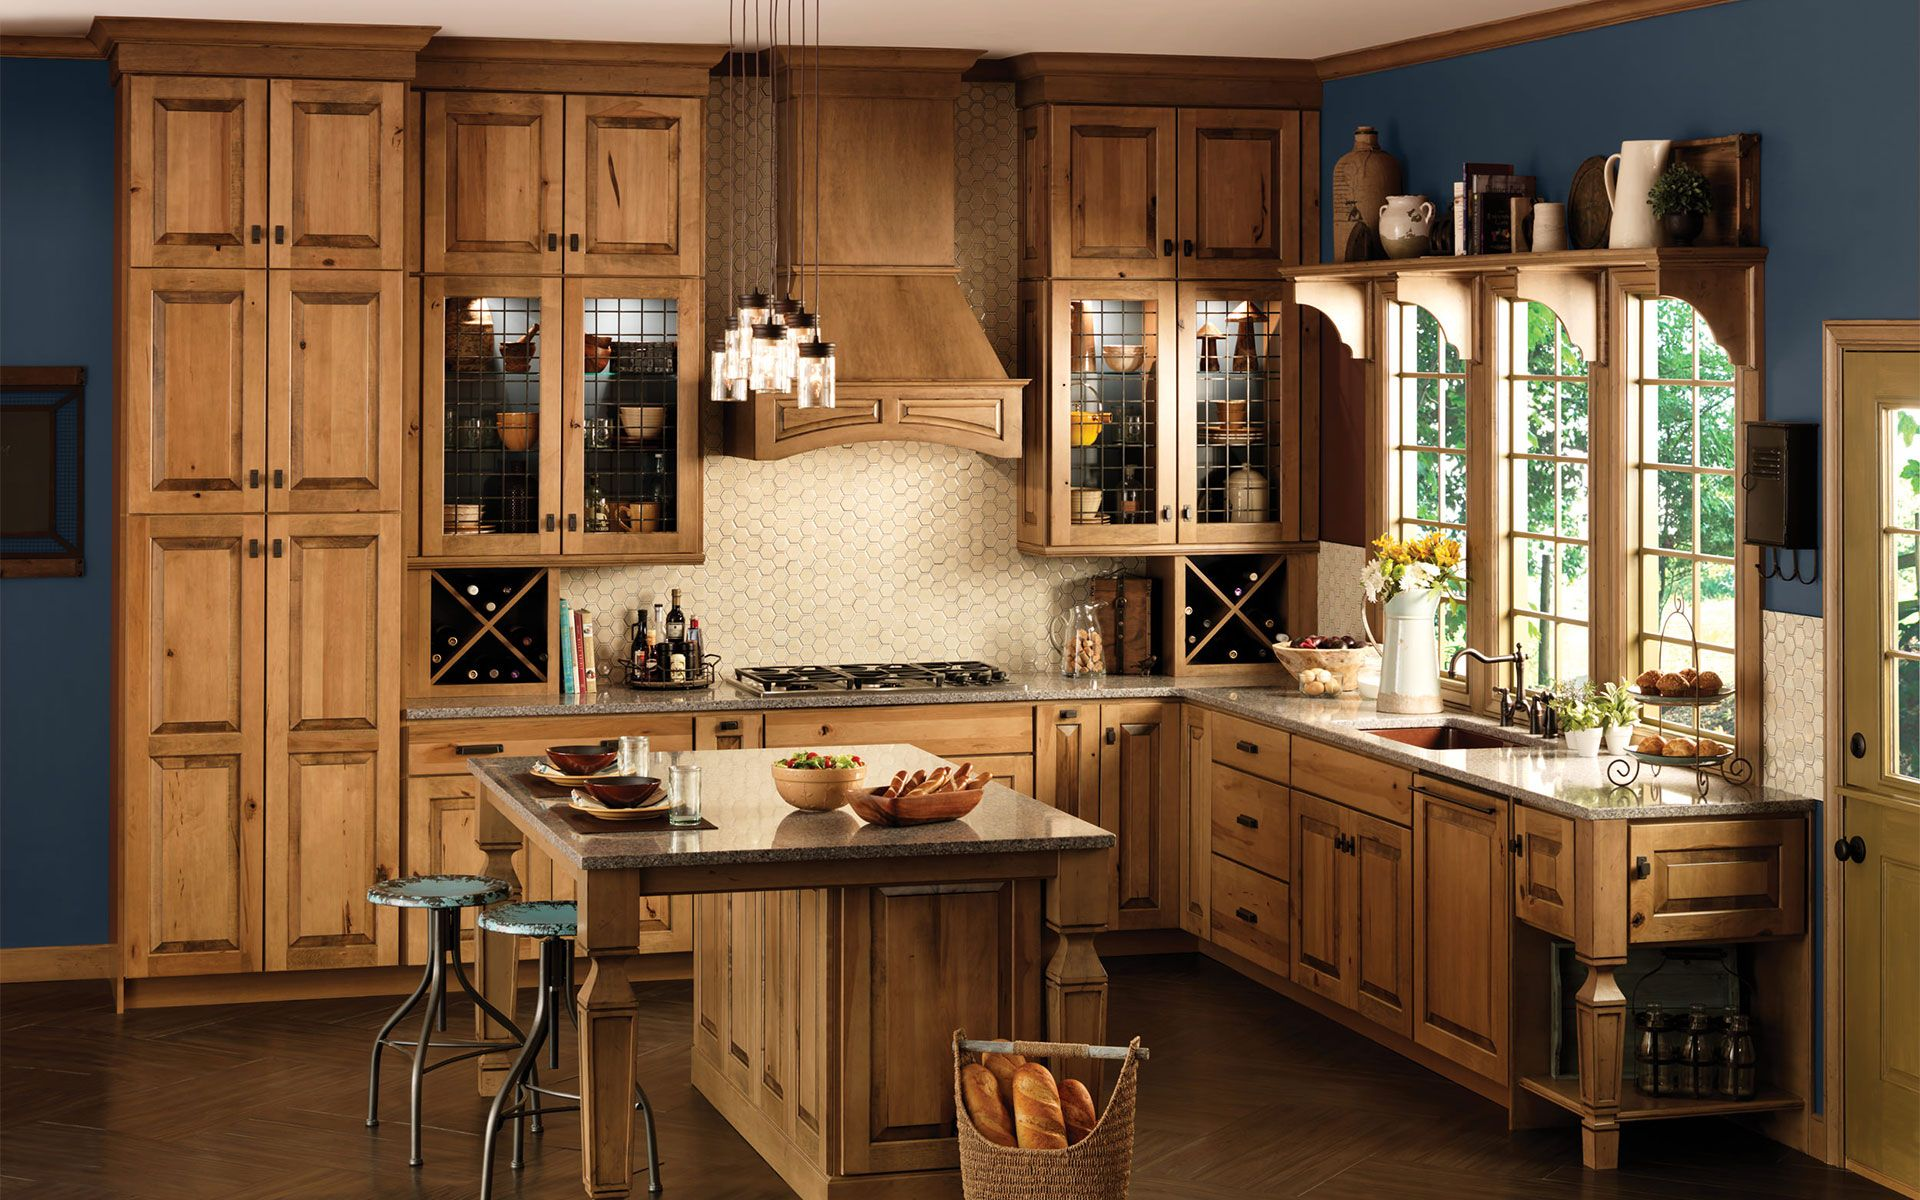 Home Mct Construction Inc Merillat Kitchen Cabinets Classic Kitchen Cabinets Cabinet Design